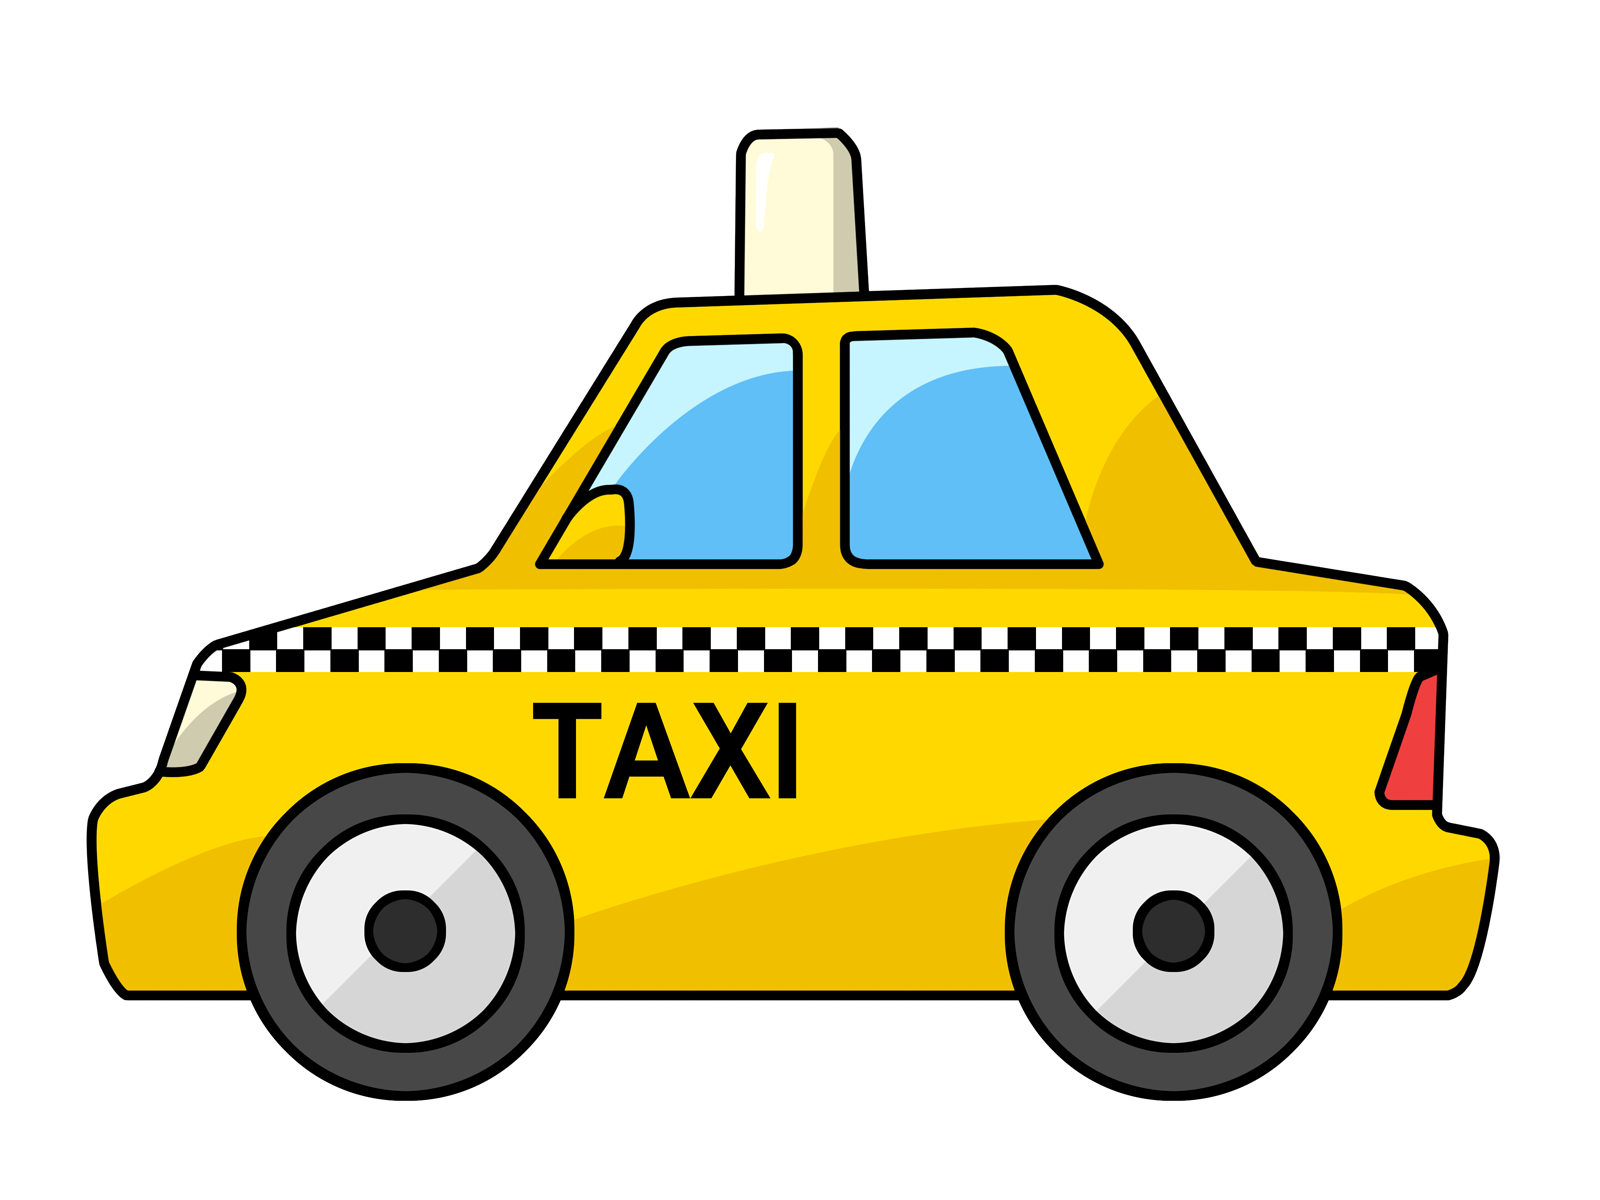 Taxi Cab Free Download Png PNG Image